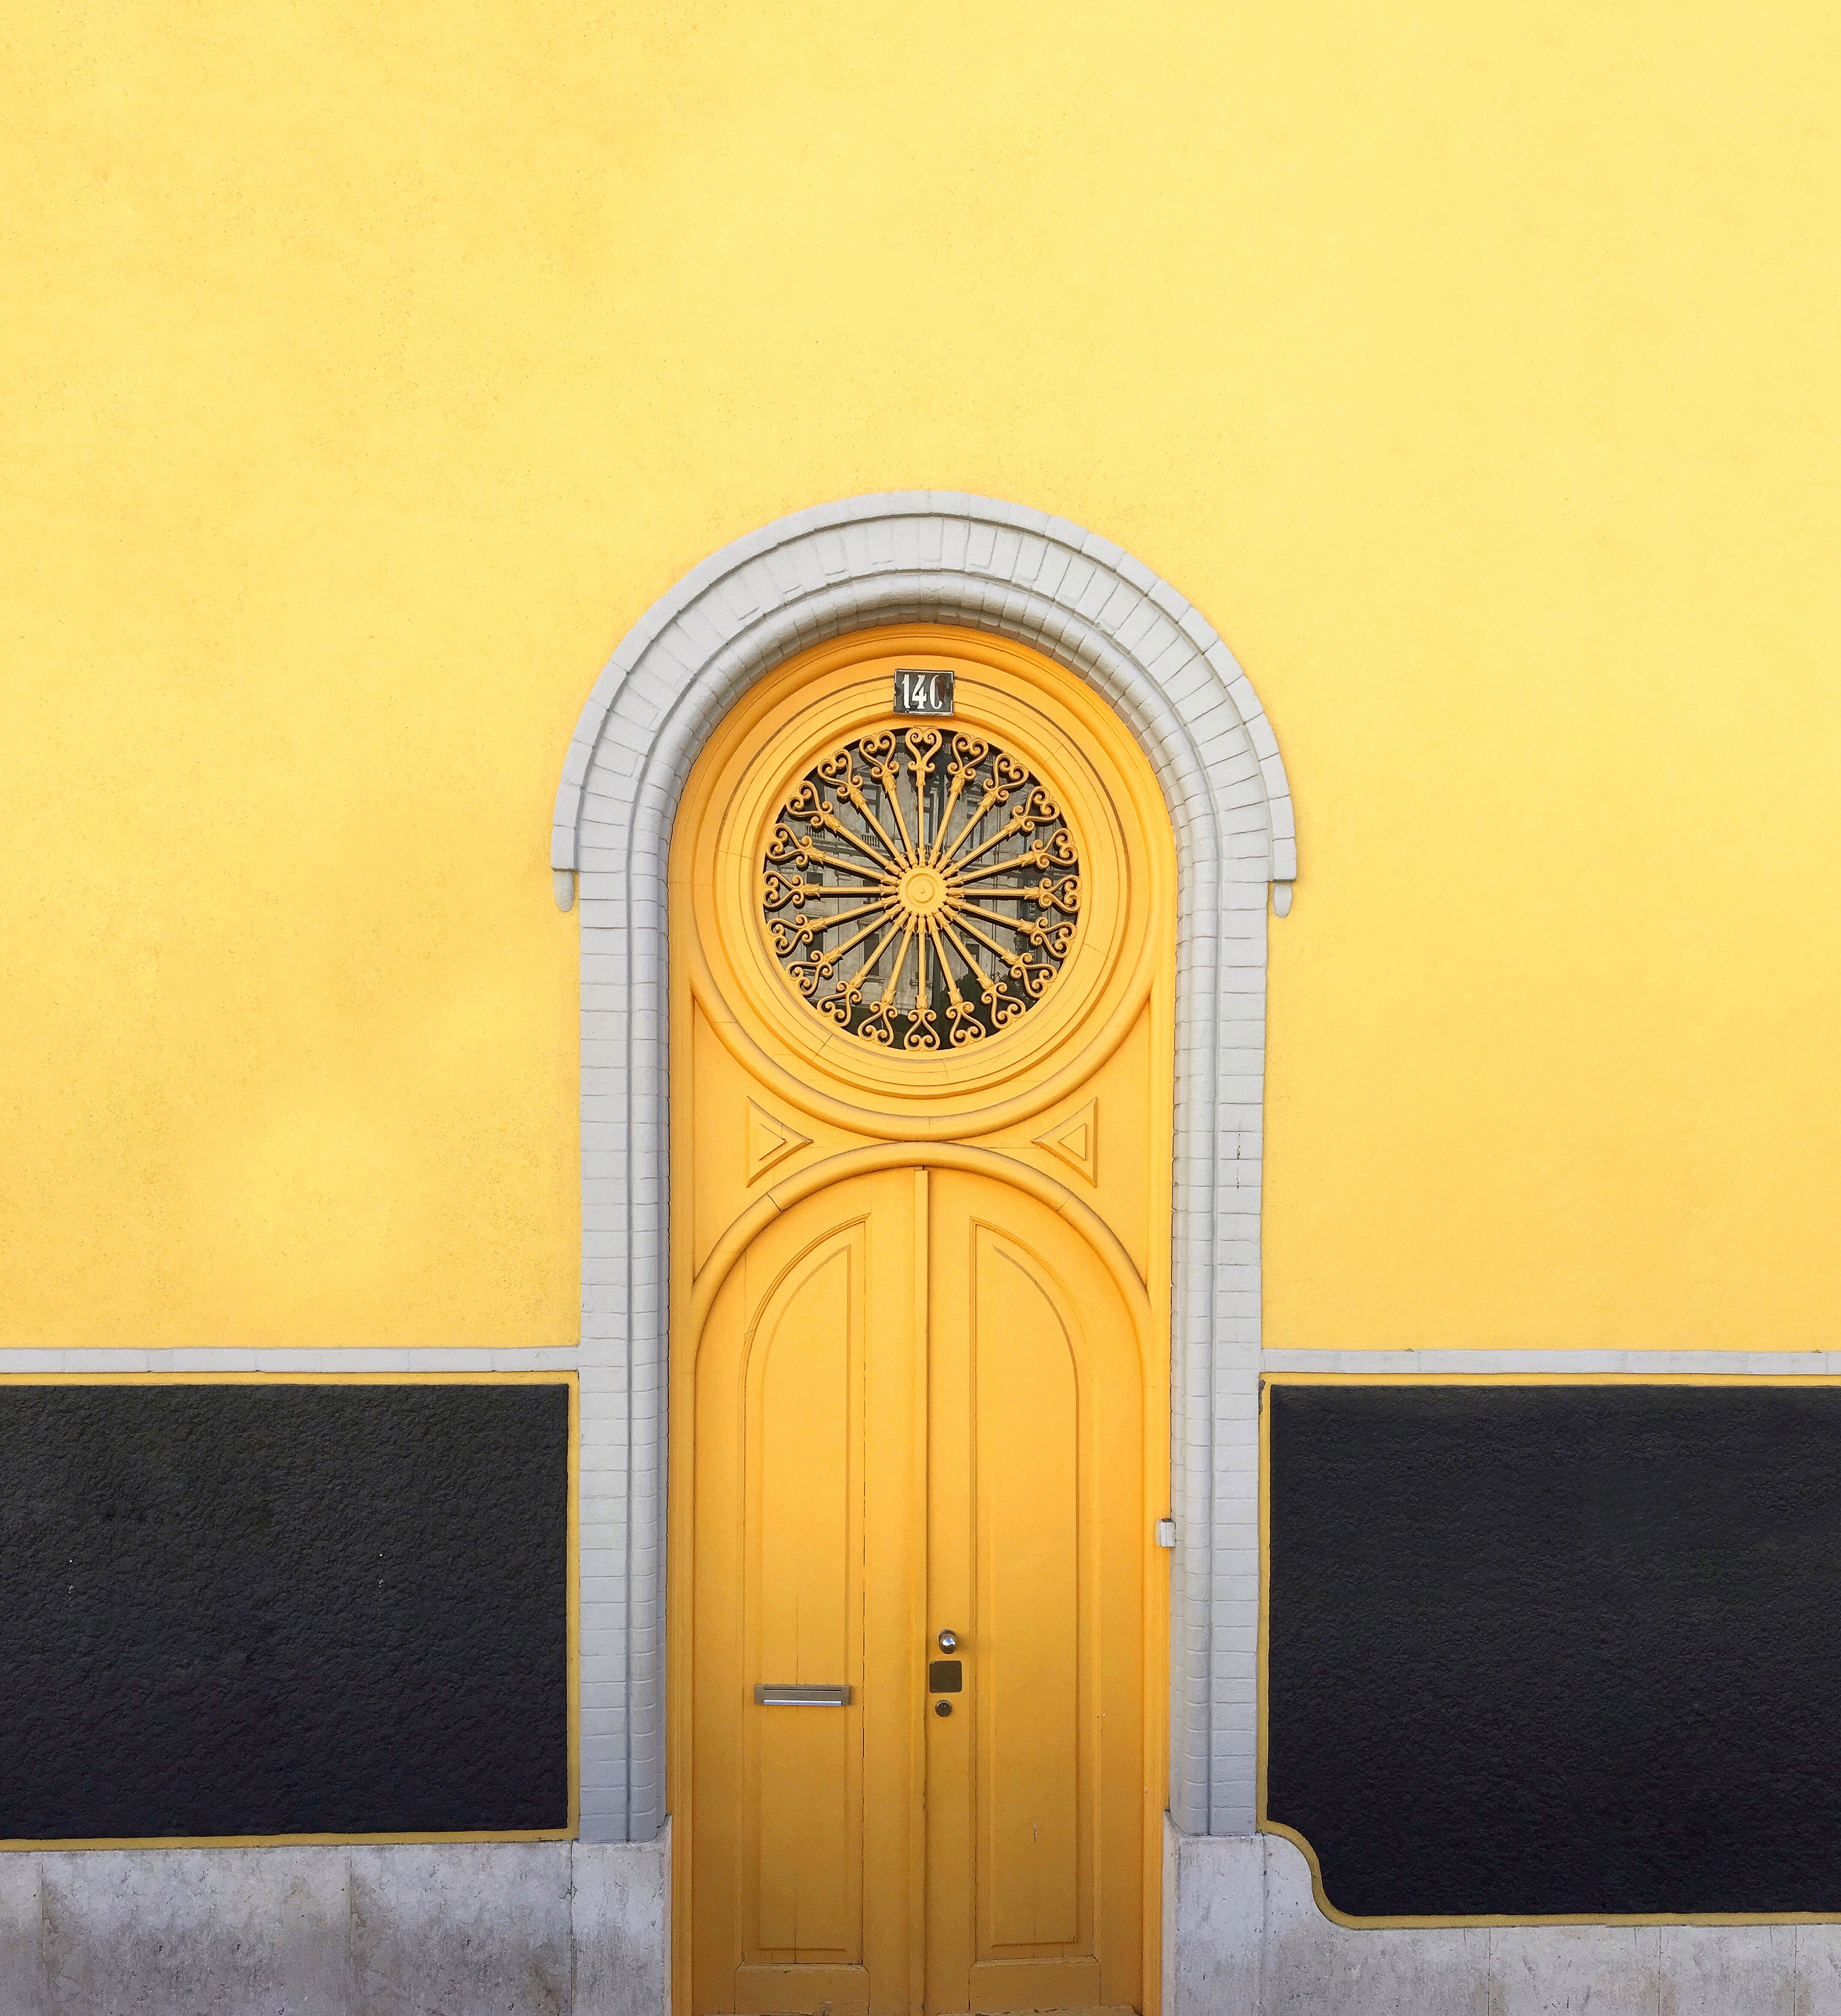 Yellow Door photo by Karla Caloca karlacaloca on Unsplash